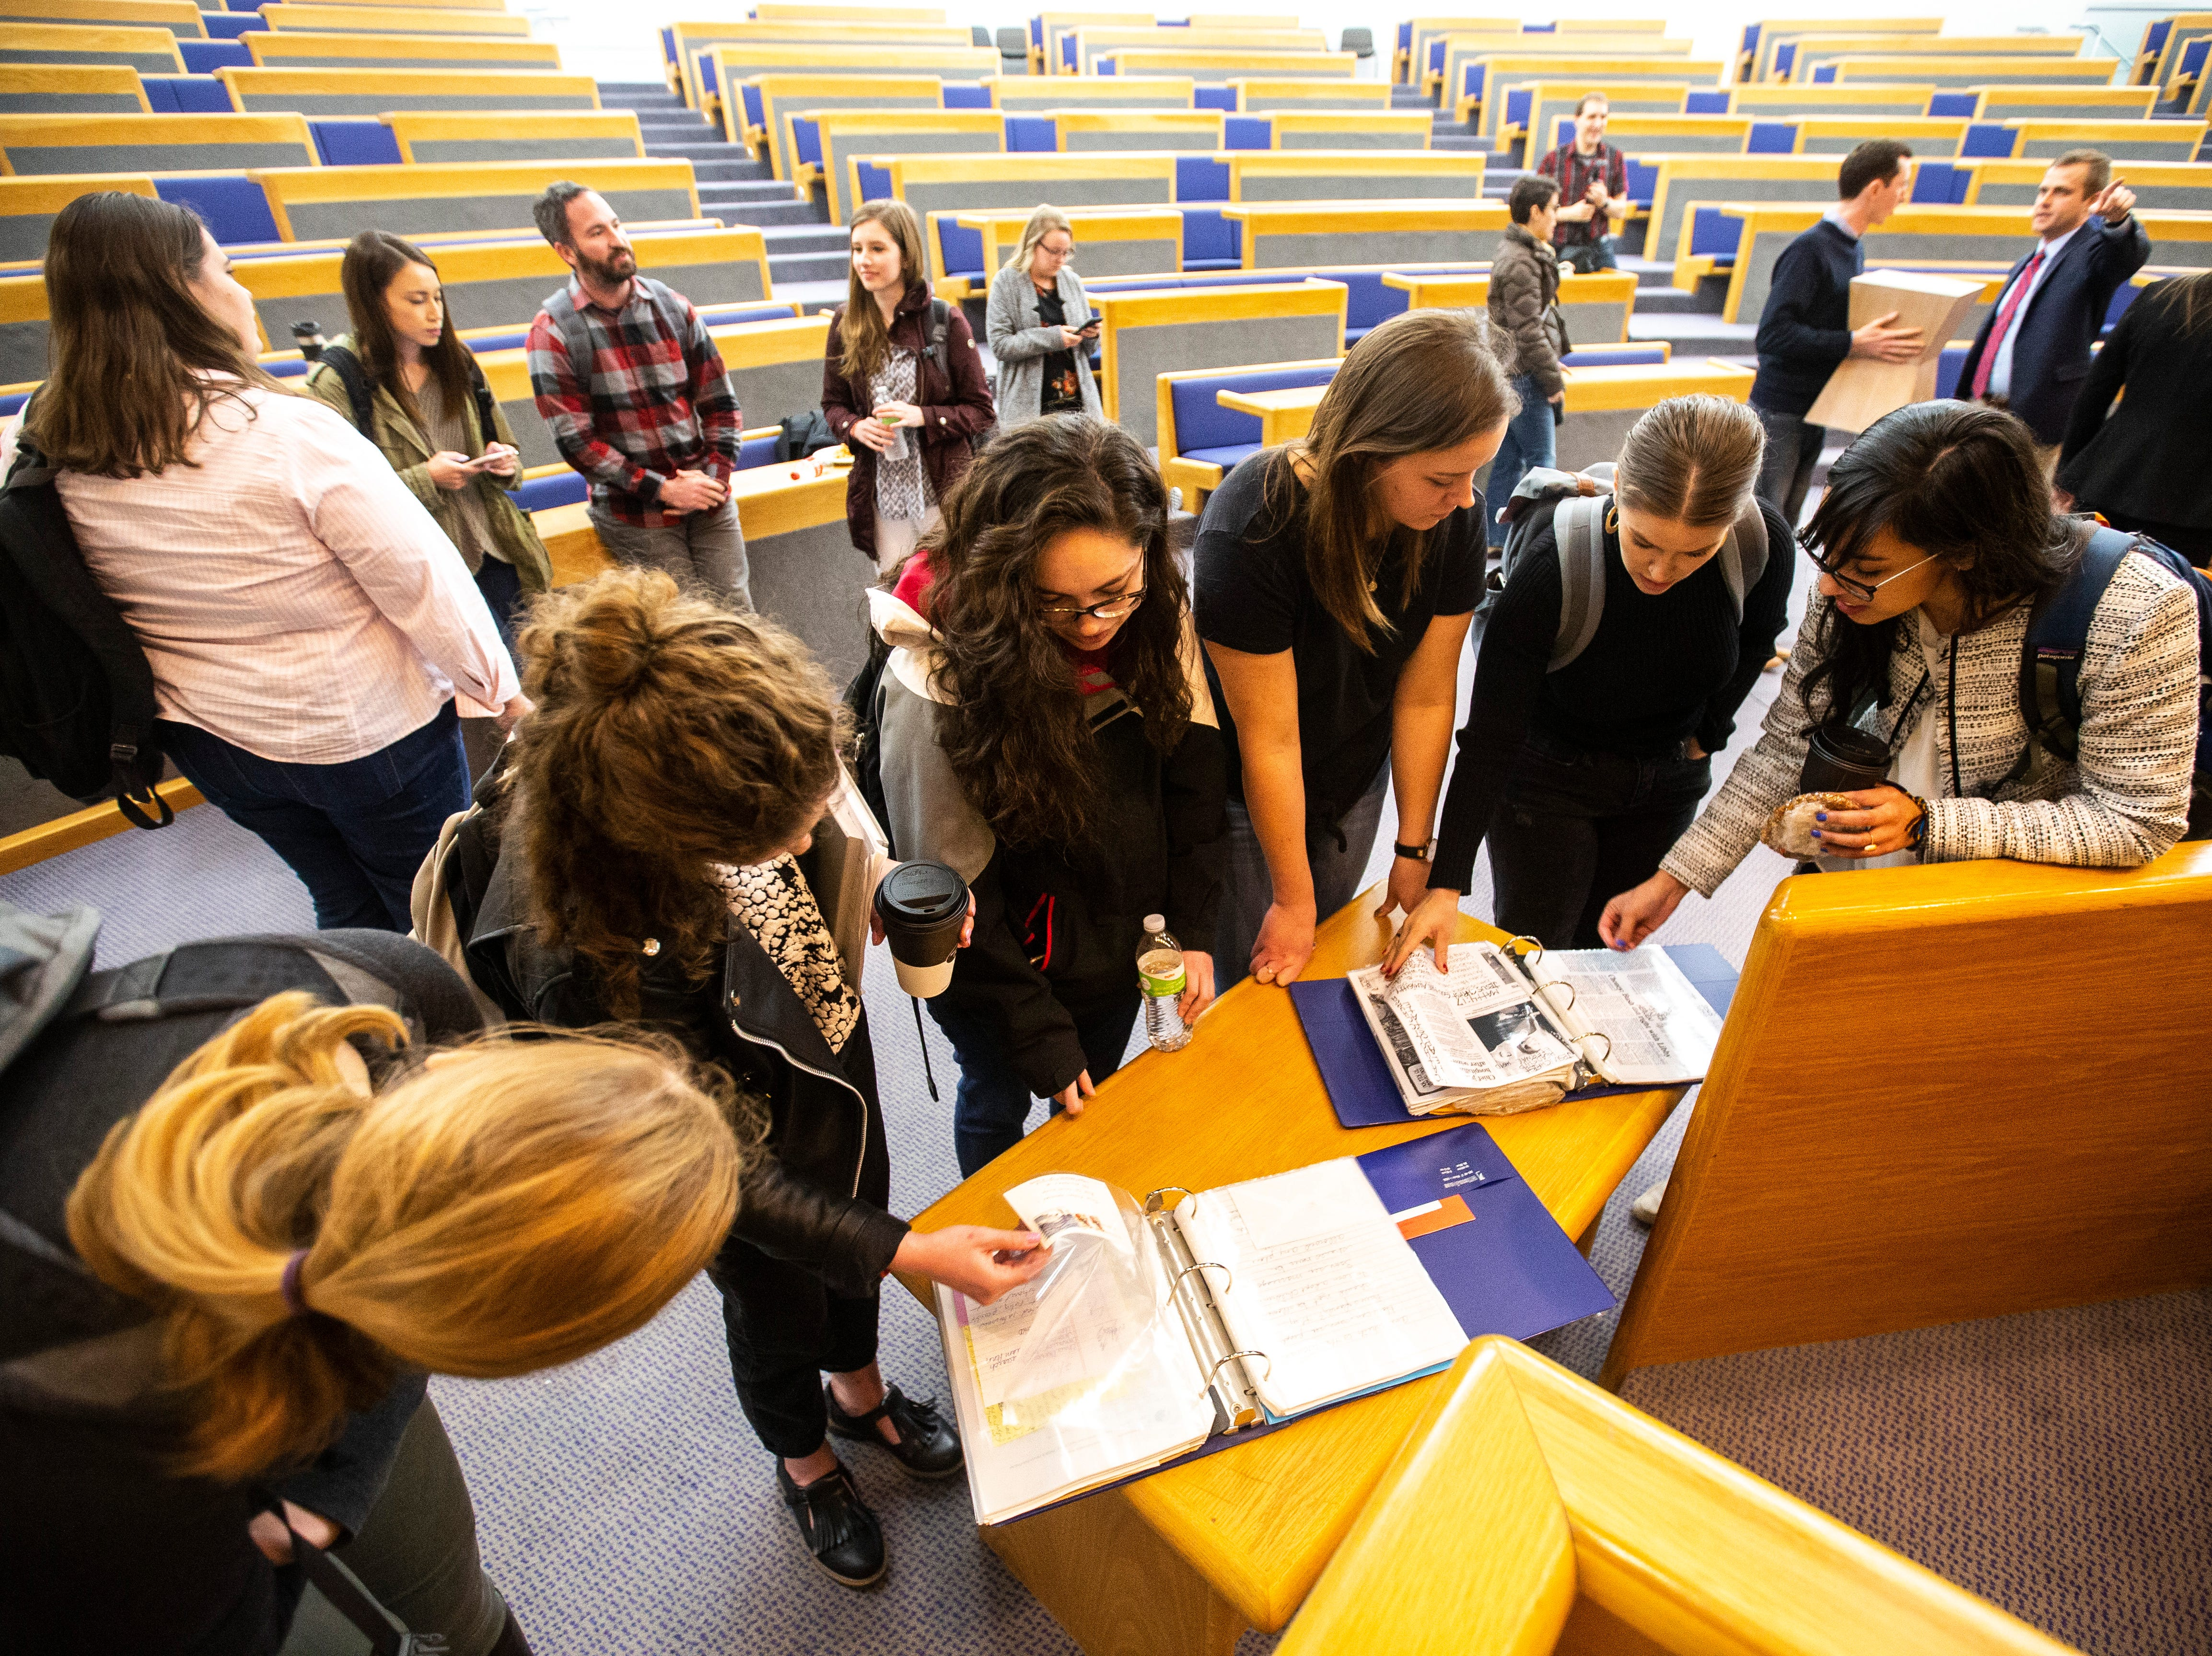 University of Iowa law students look at laminated binders of letters sent to District 5 Judge Robert B. Hanson regarding the Varnum v. Brien Iowa Supreme Court decision after a panel, Thursday, April 18, 2019, in the Boyd Law Building on the University of Iowa campus in Iowa City, Iowa.